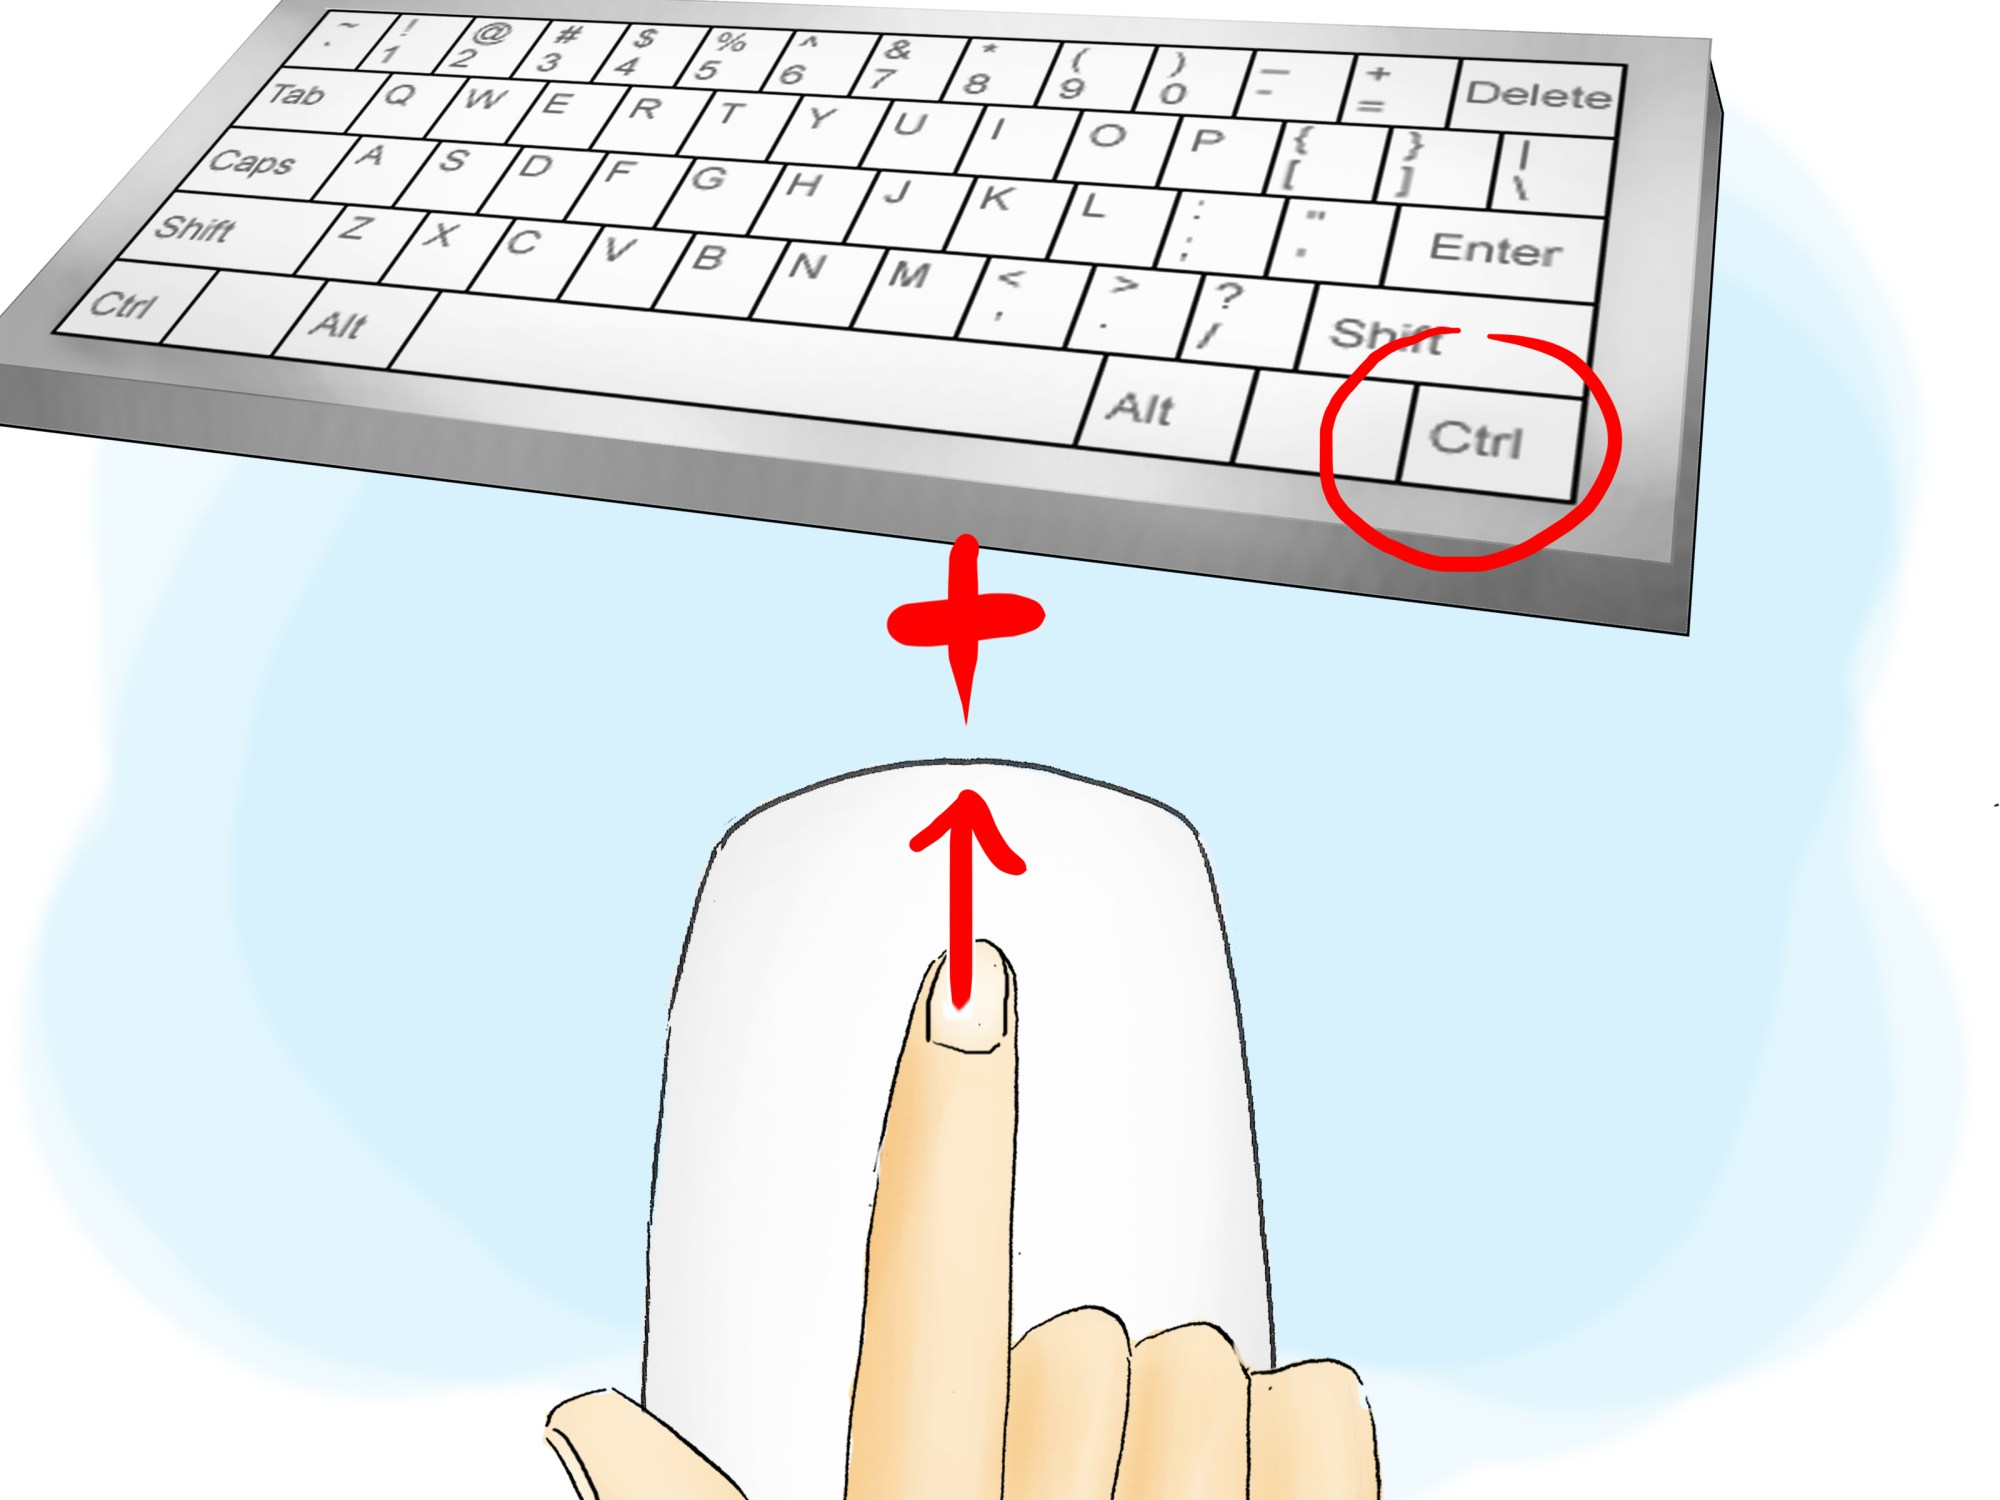 hight resolution of how to use a computer mouse